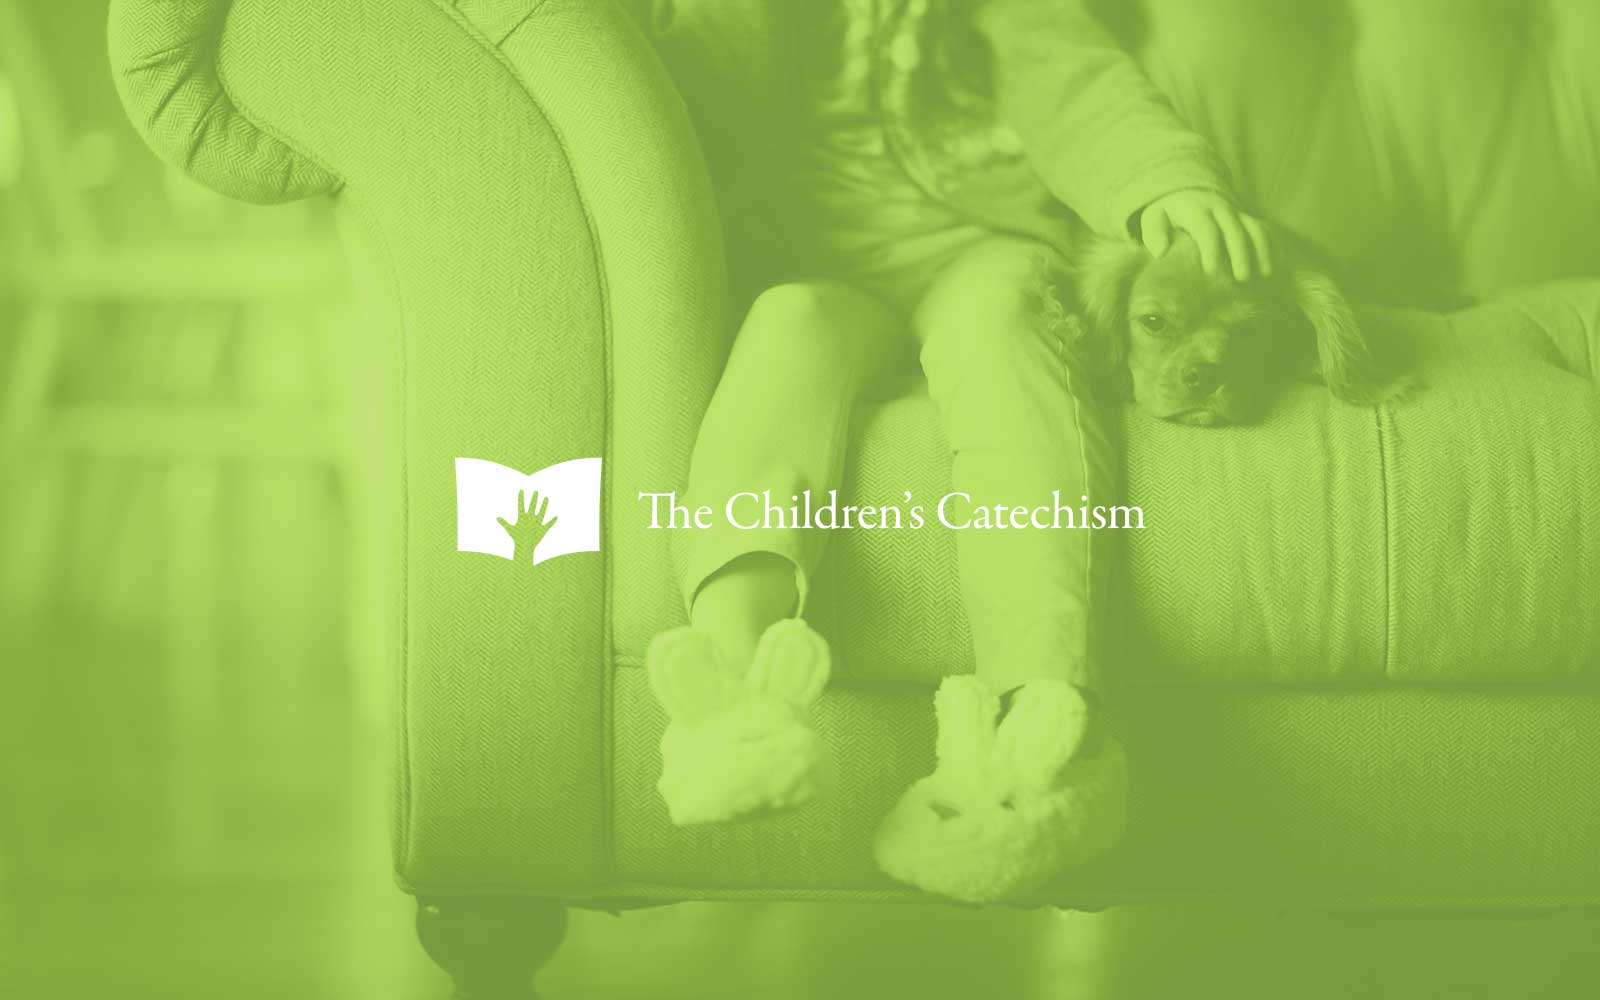 Children's-Catechims-Branding-10 logo inverse over photography